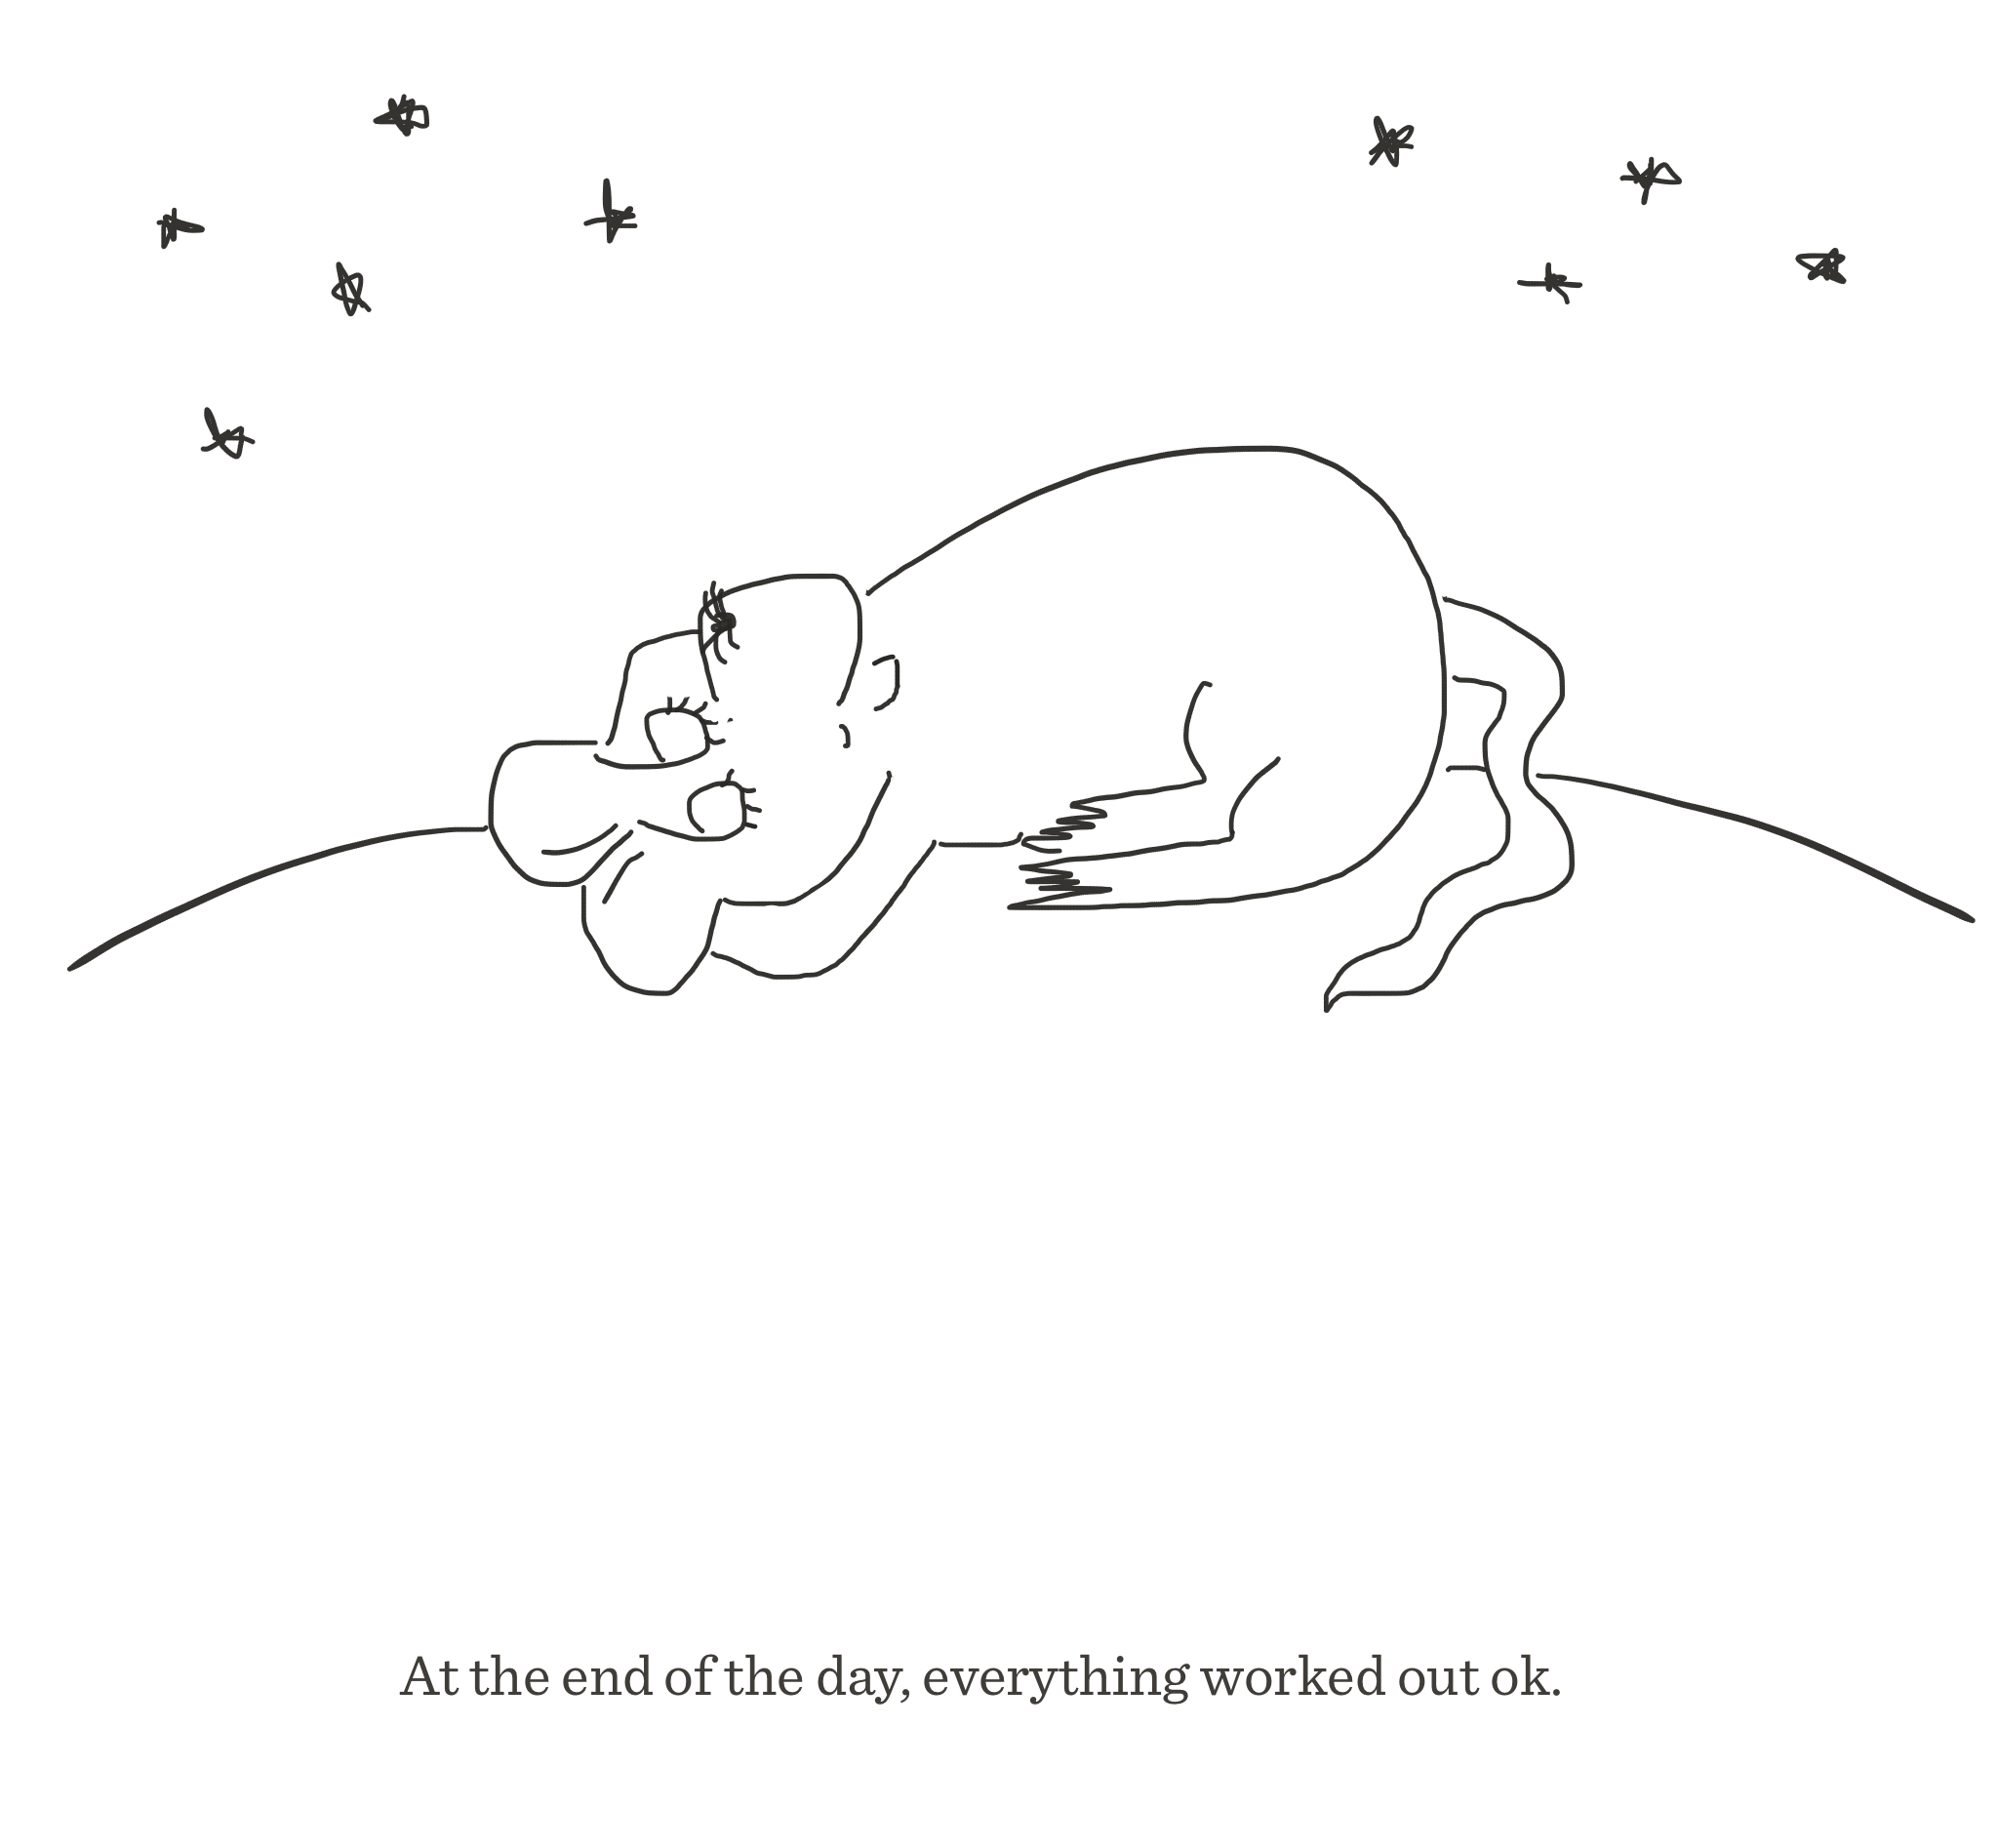 At the end of the day, The Happy Rat cartoon